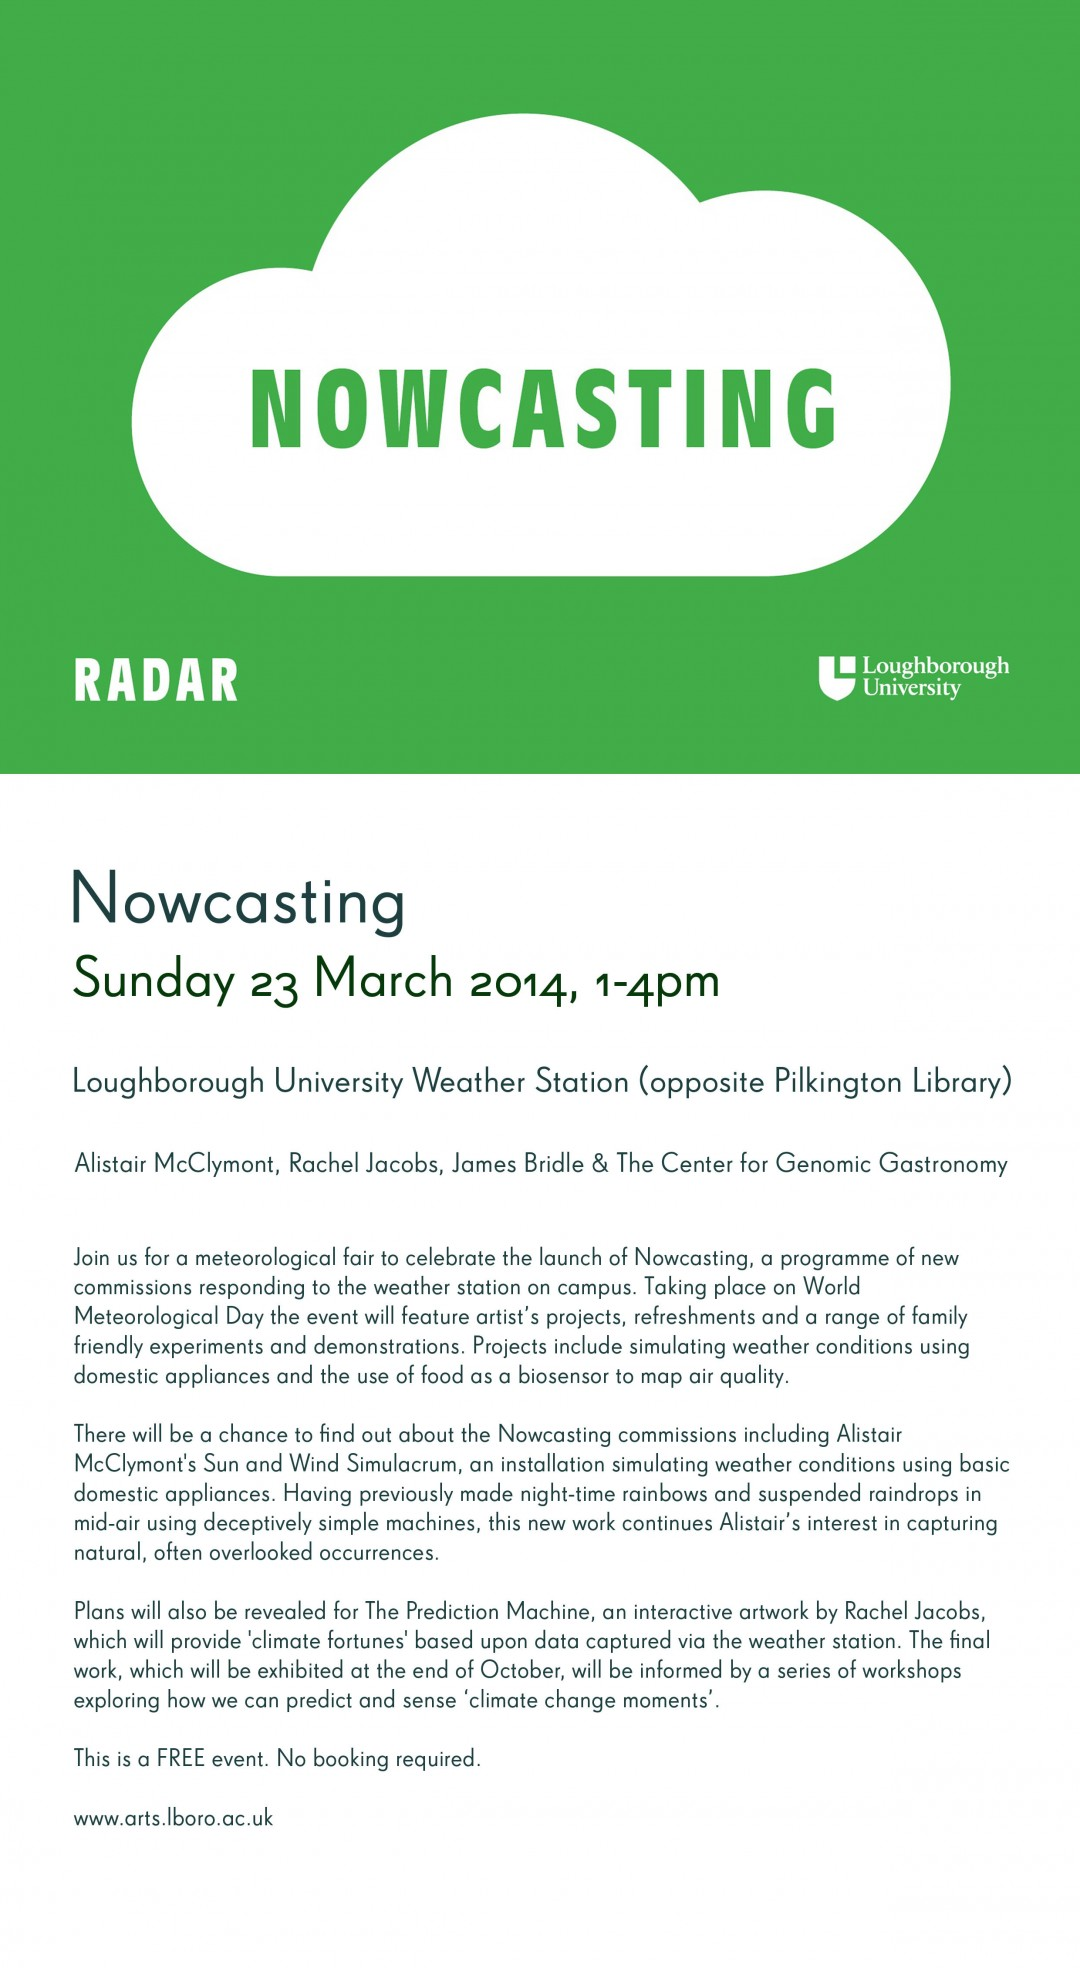 Nowcasting Launch - Sunday 23rd March